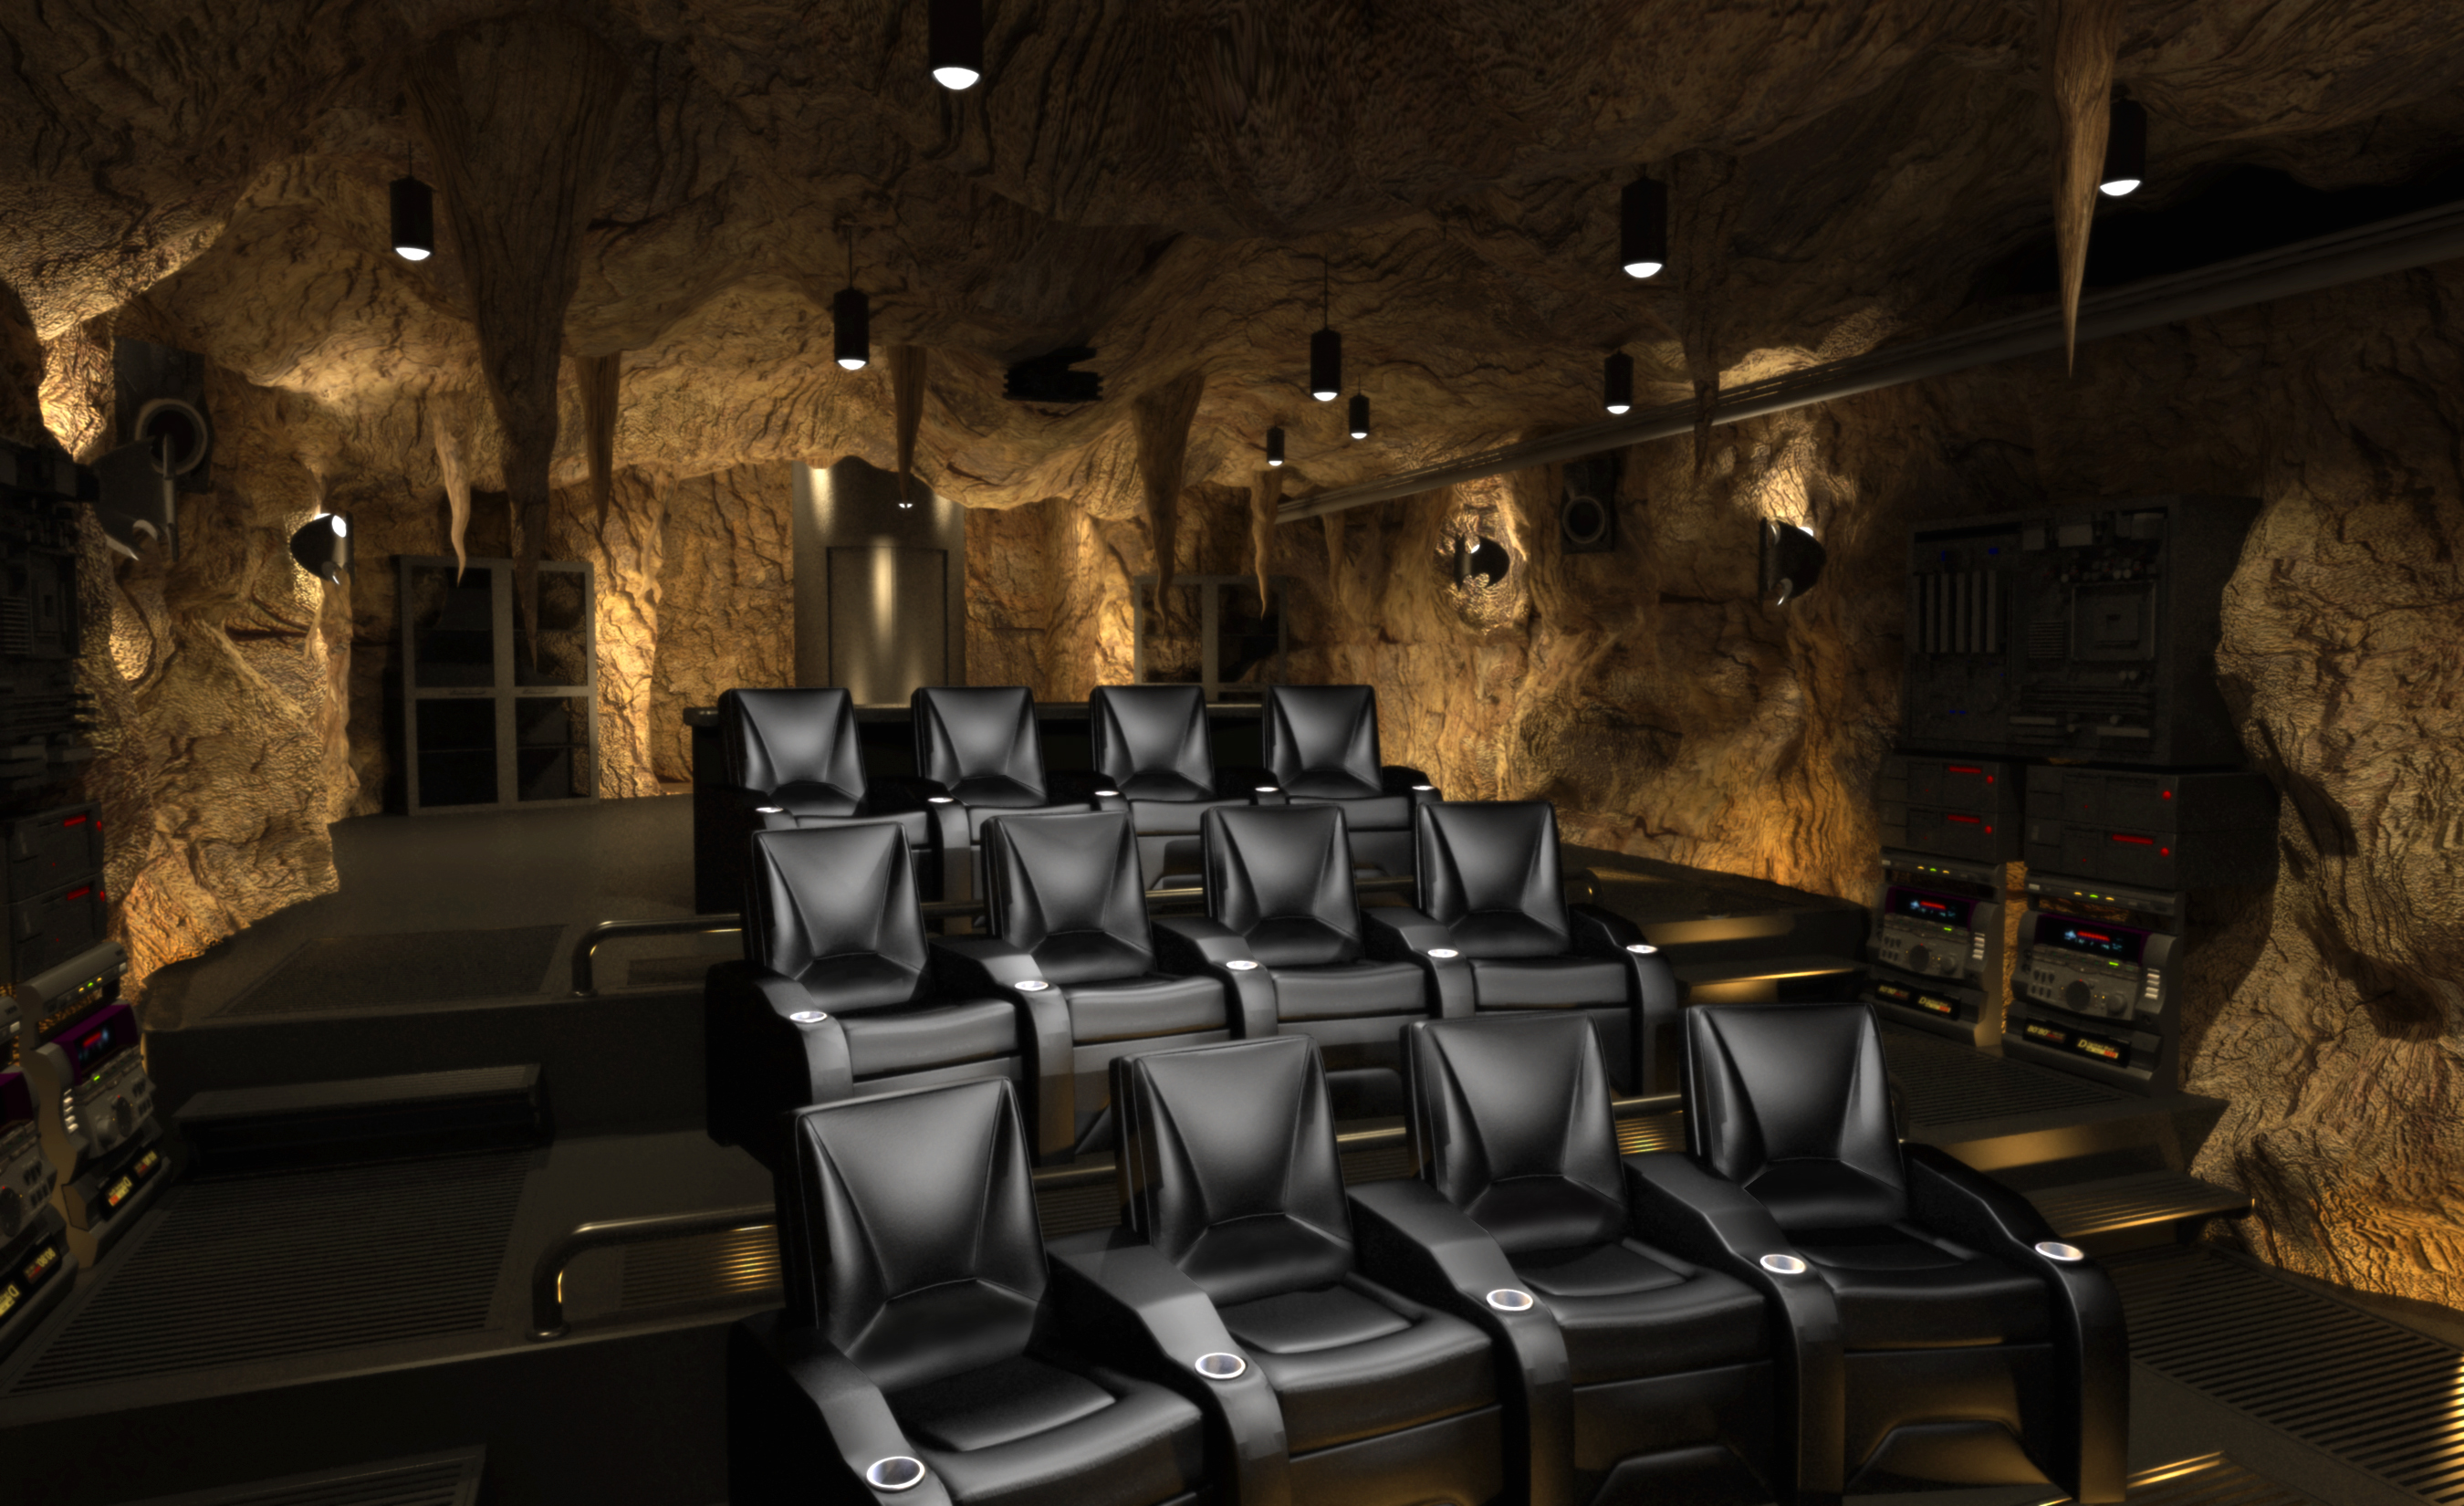 Original Batcave Theater Concept